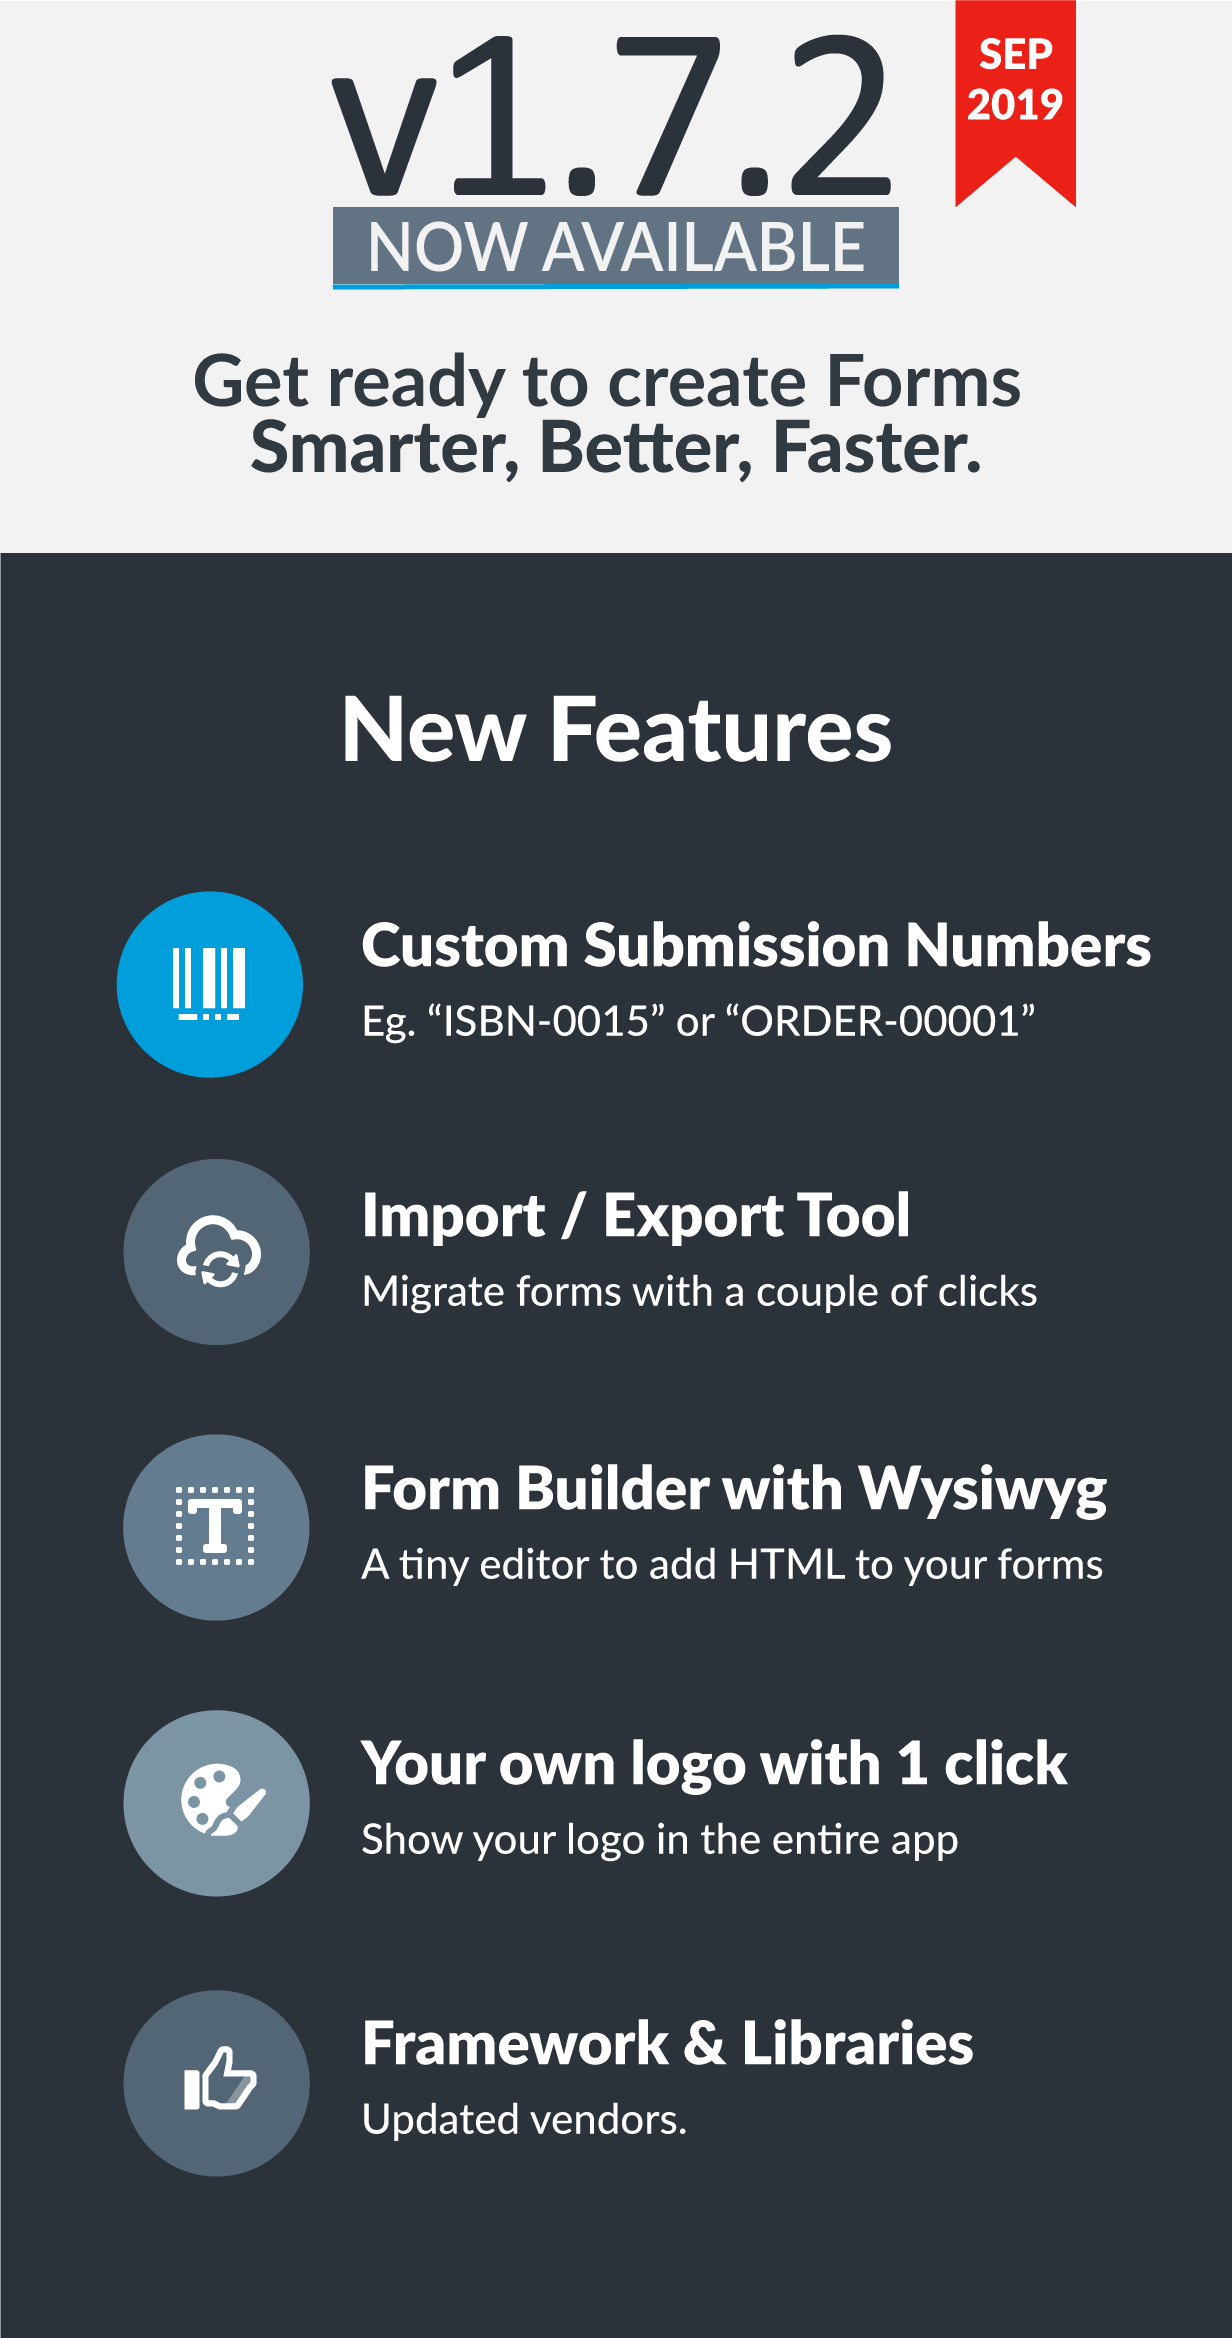 Easy Forms v1.7.2 released